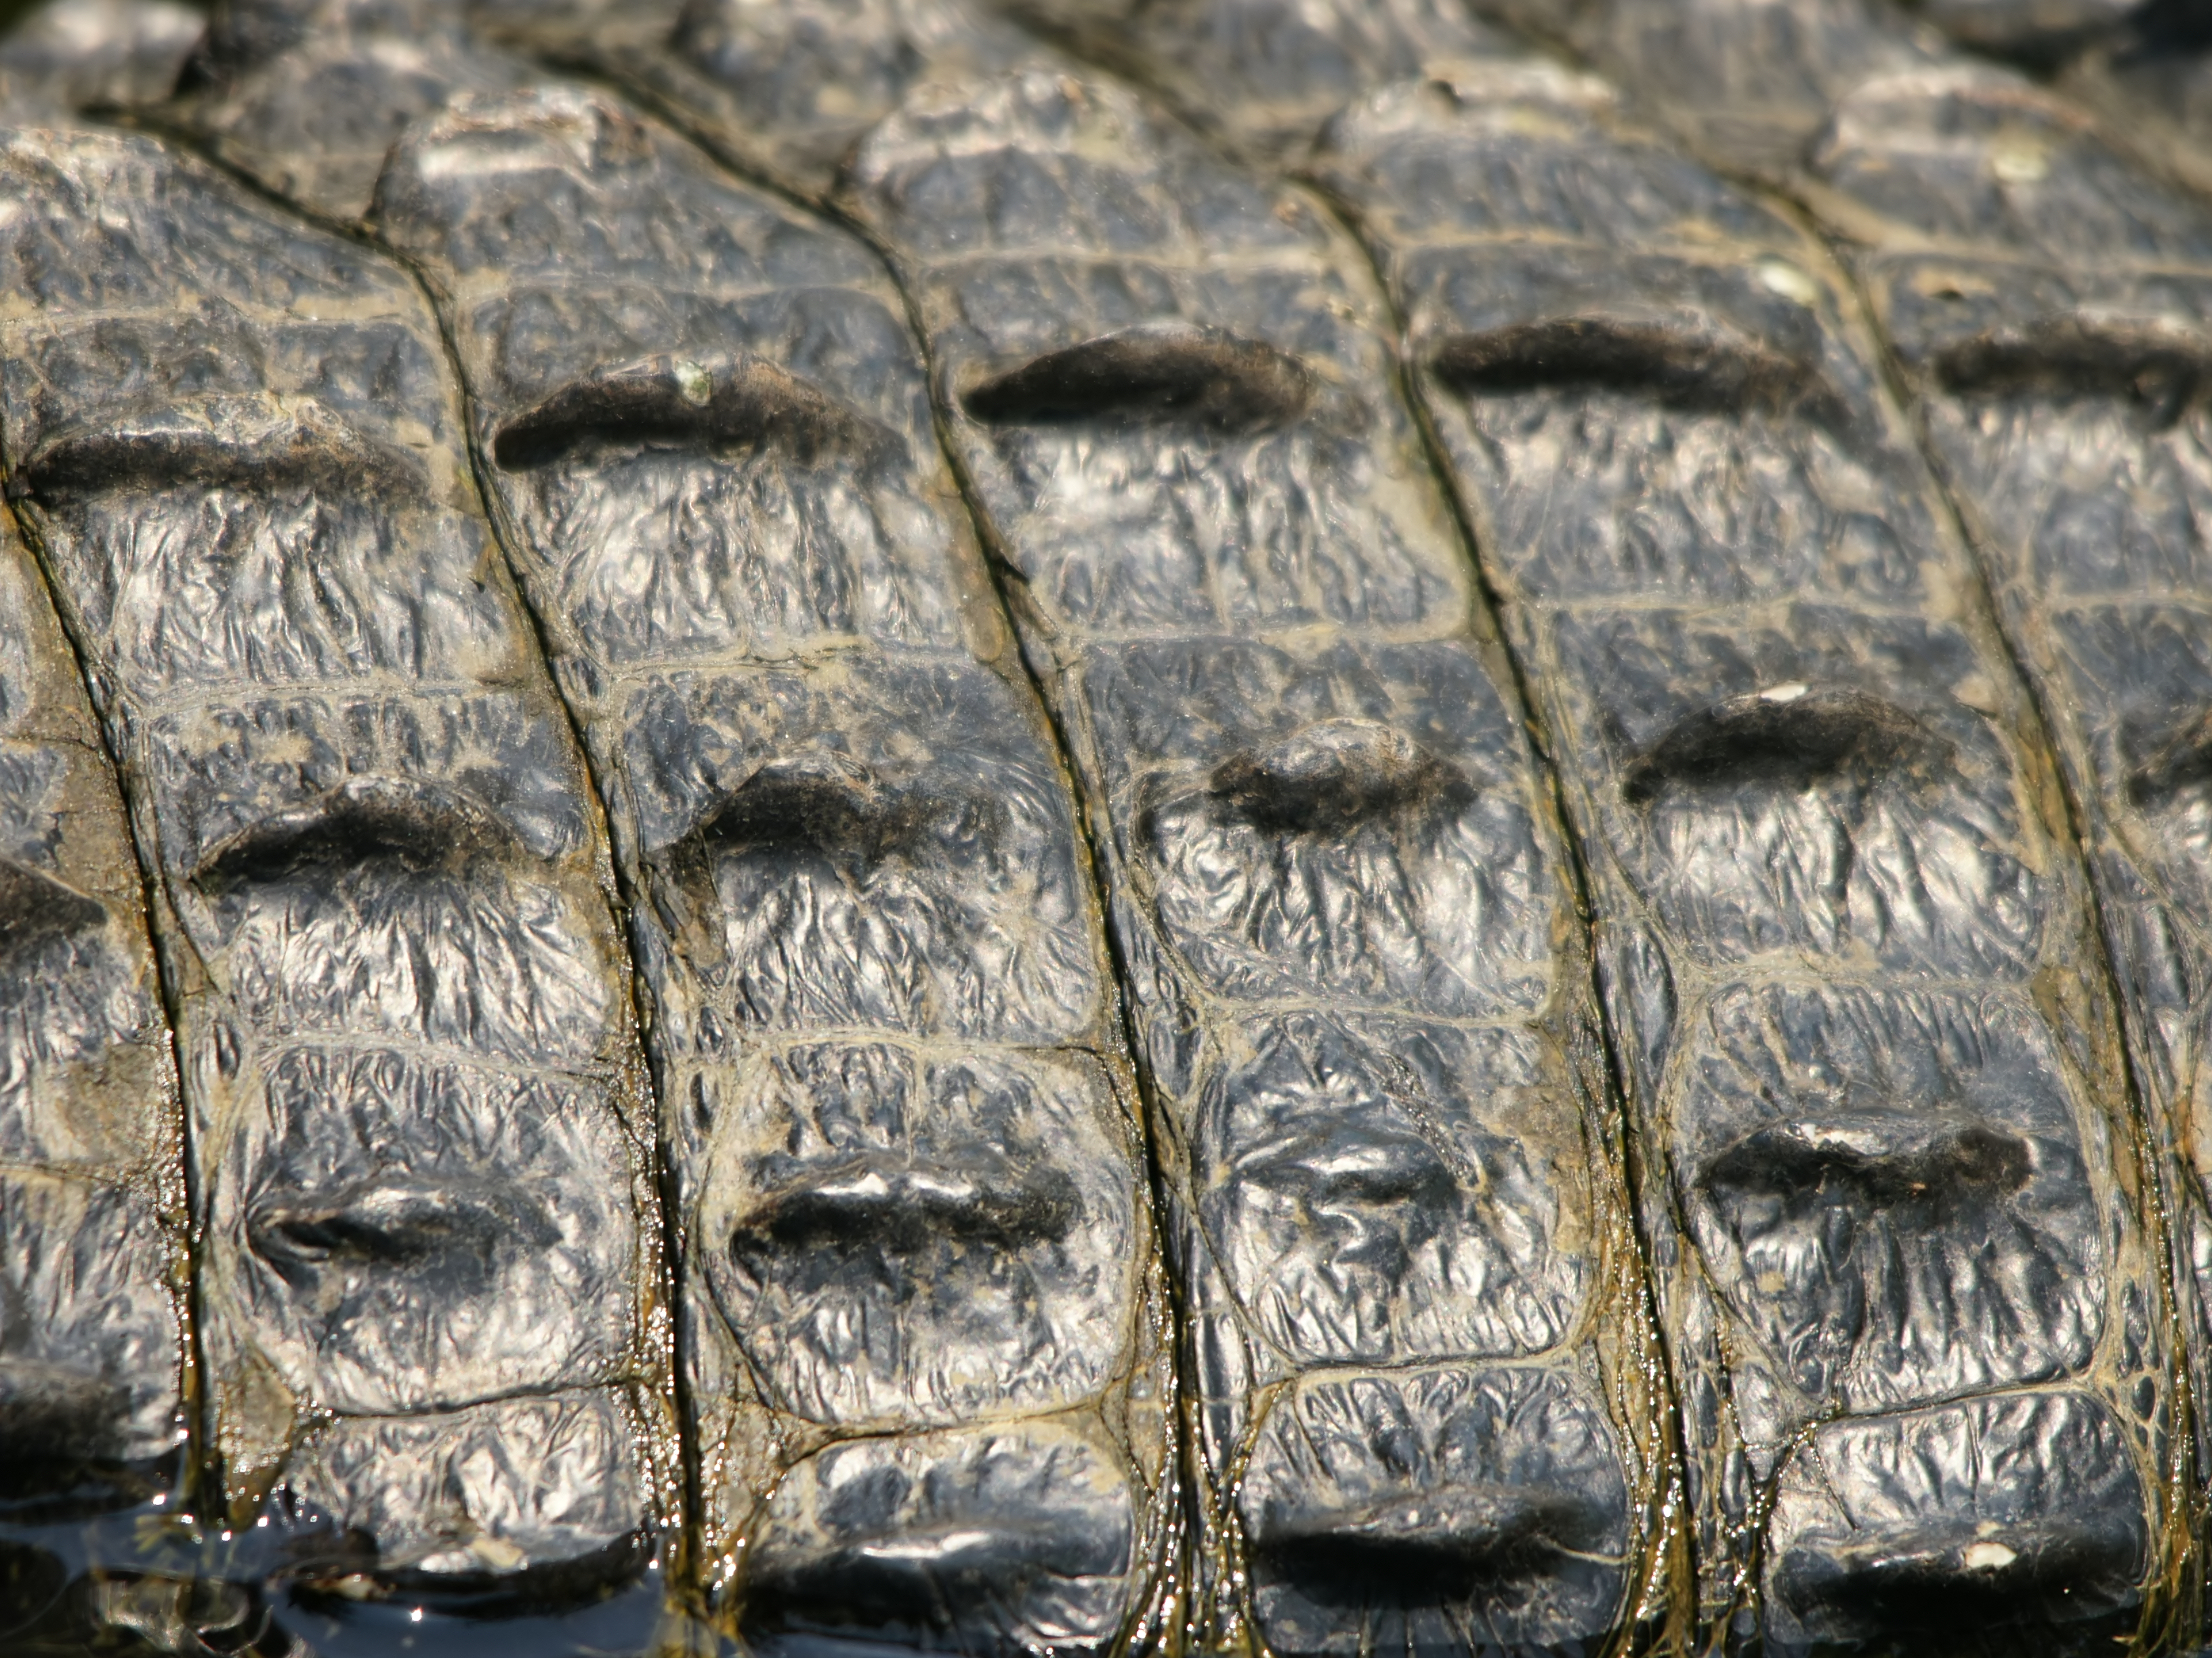 Alligator_mississipiensis_(skin).jpg